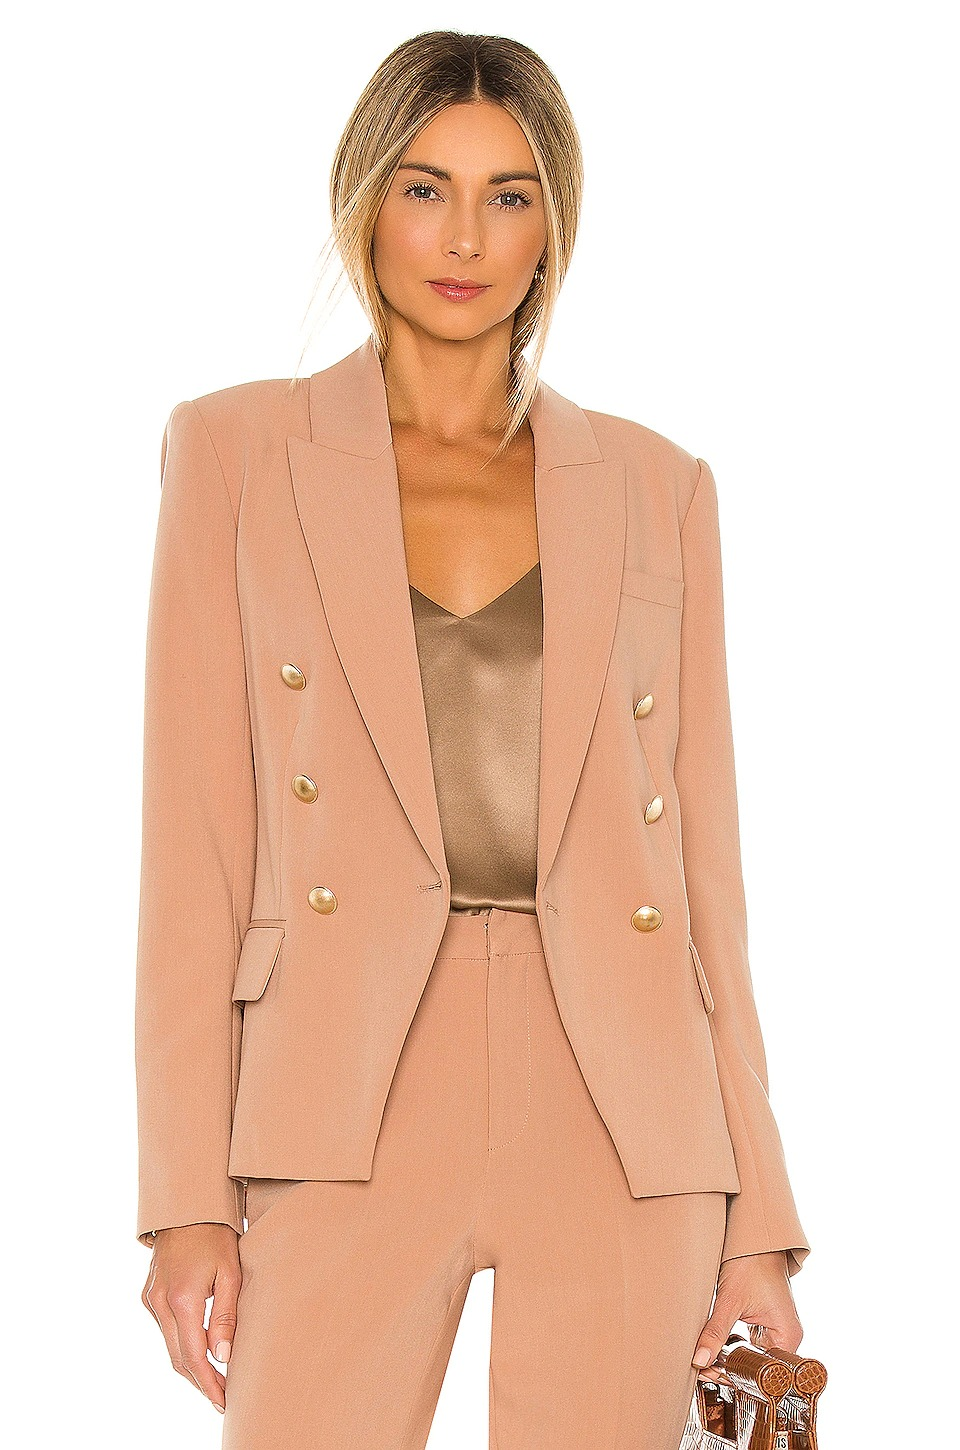 Camel blazer and trouser suits for female wedding guests